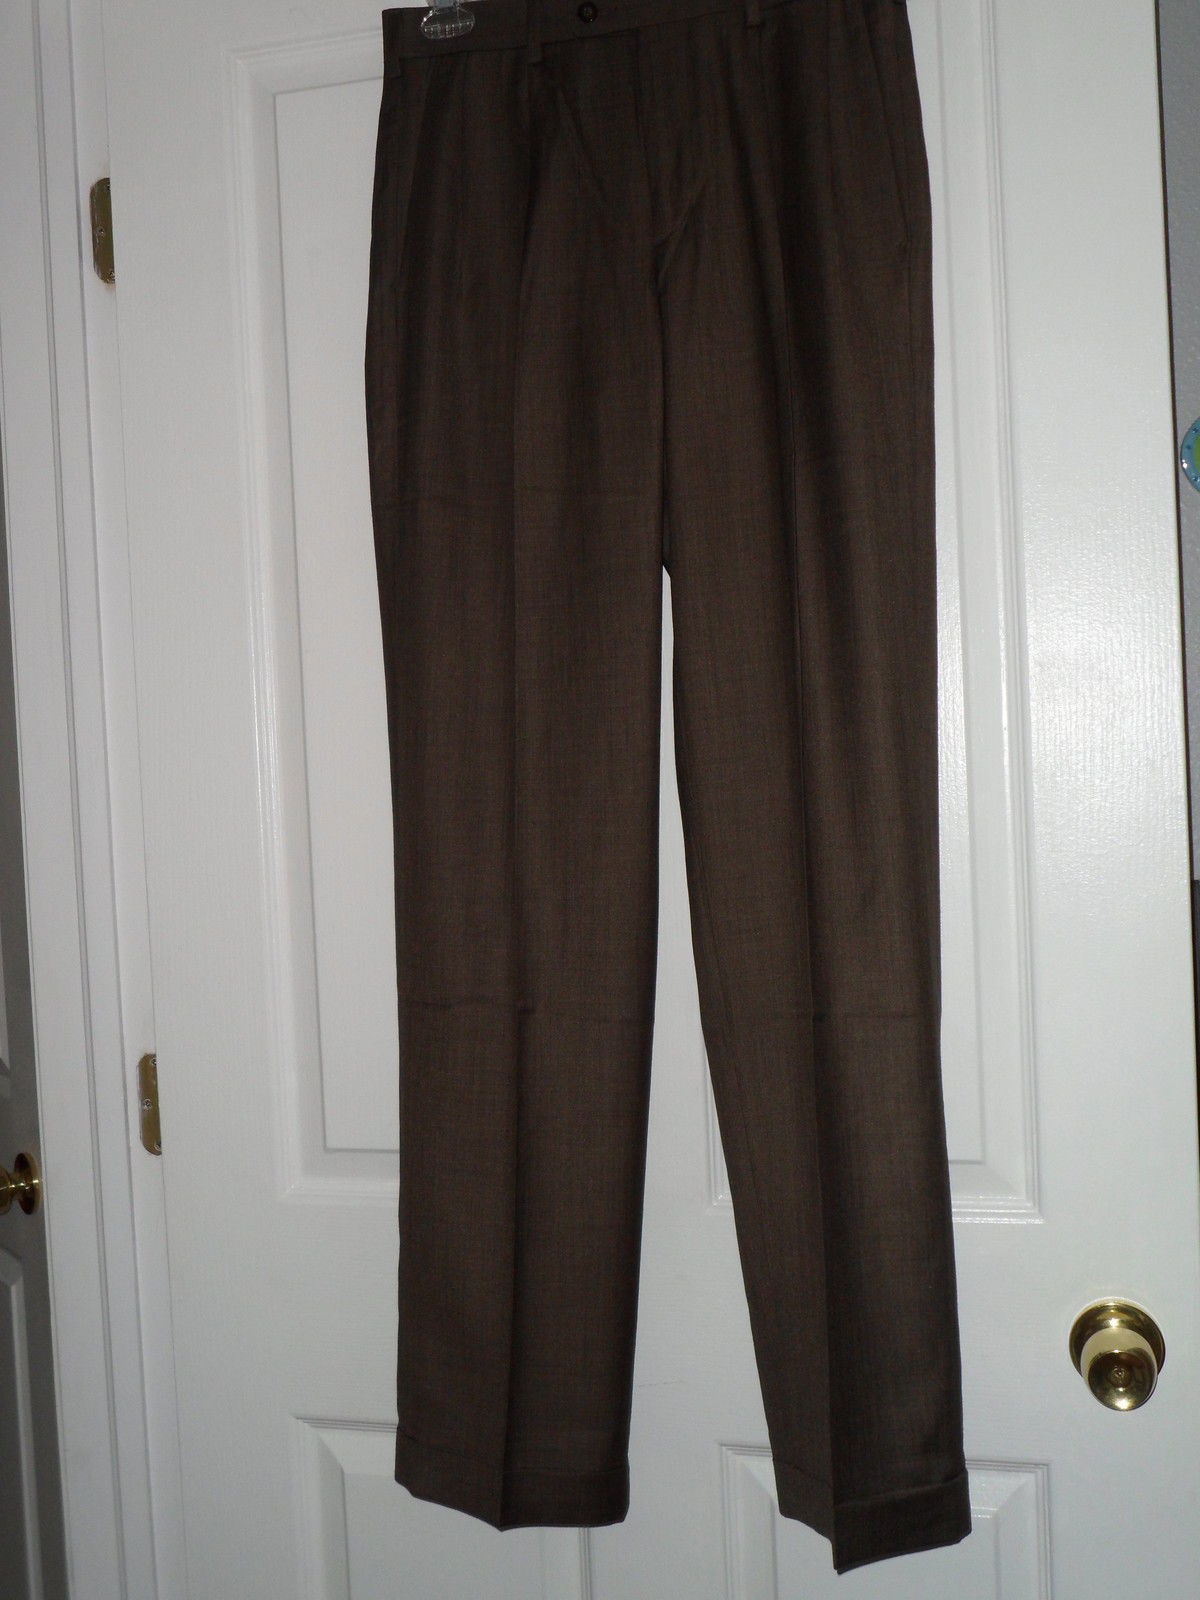 Axist Mens Dress Pants Size 30 X 34 Brown and 14 similar items